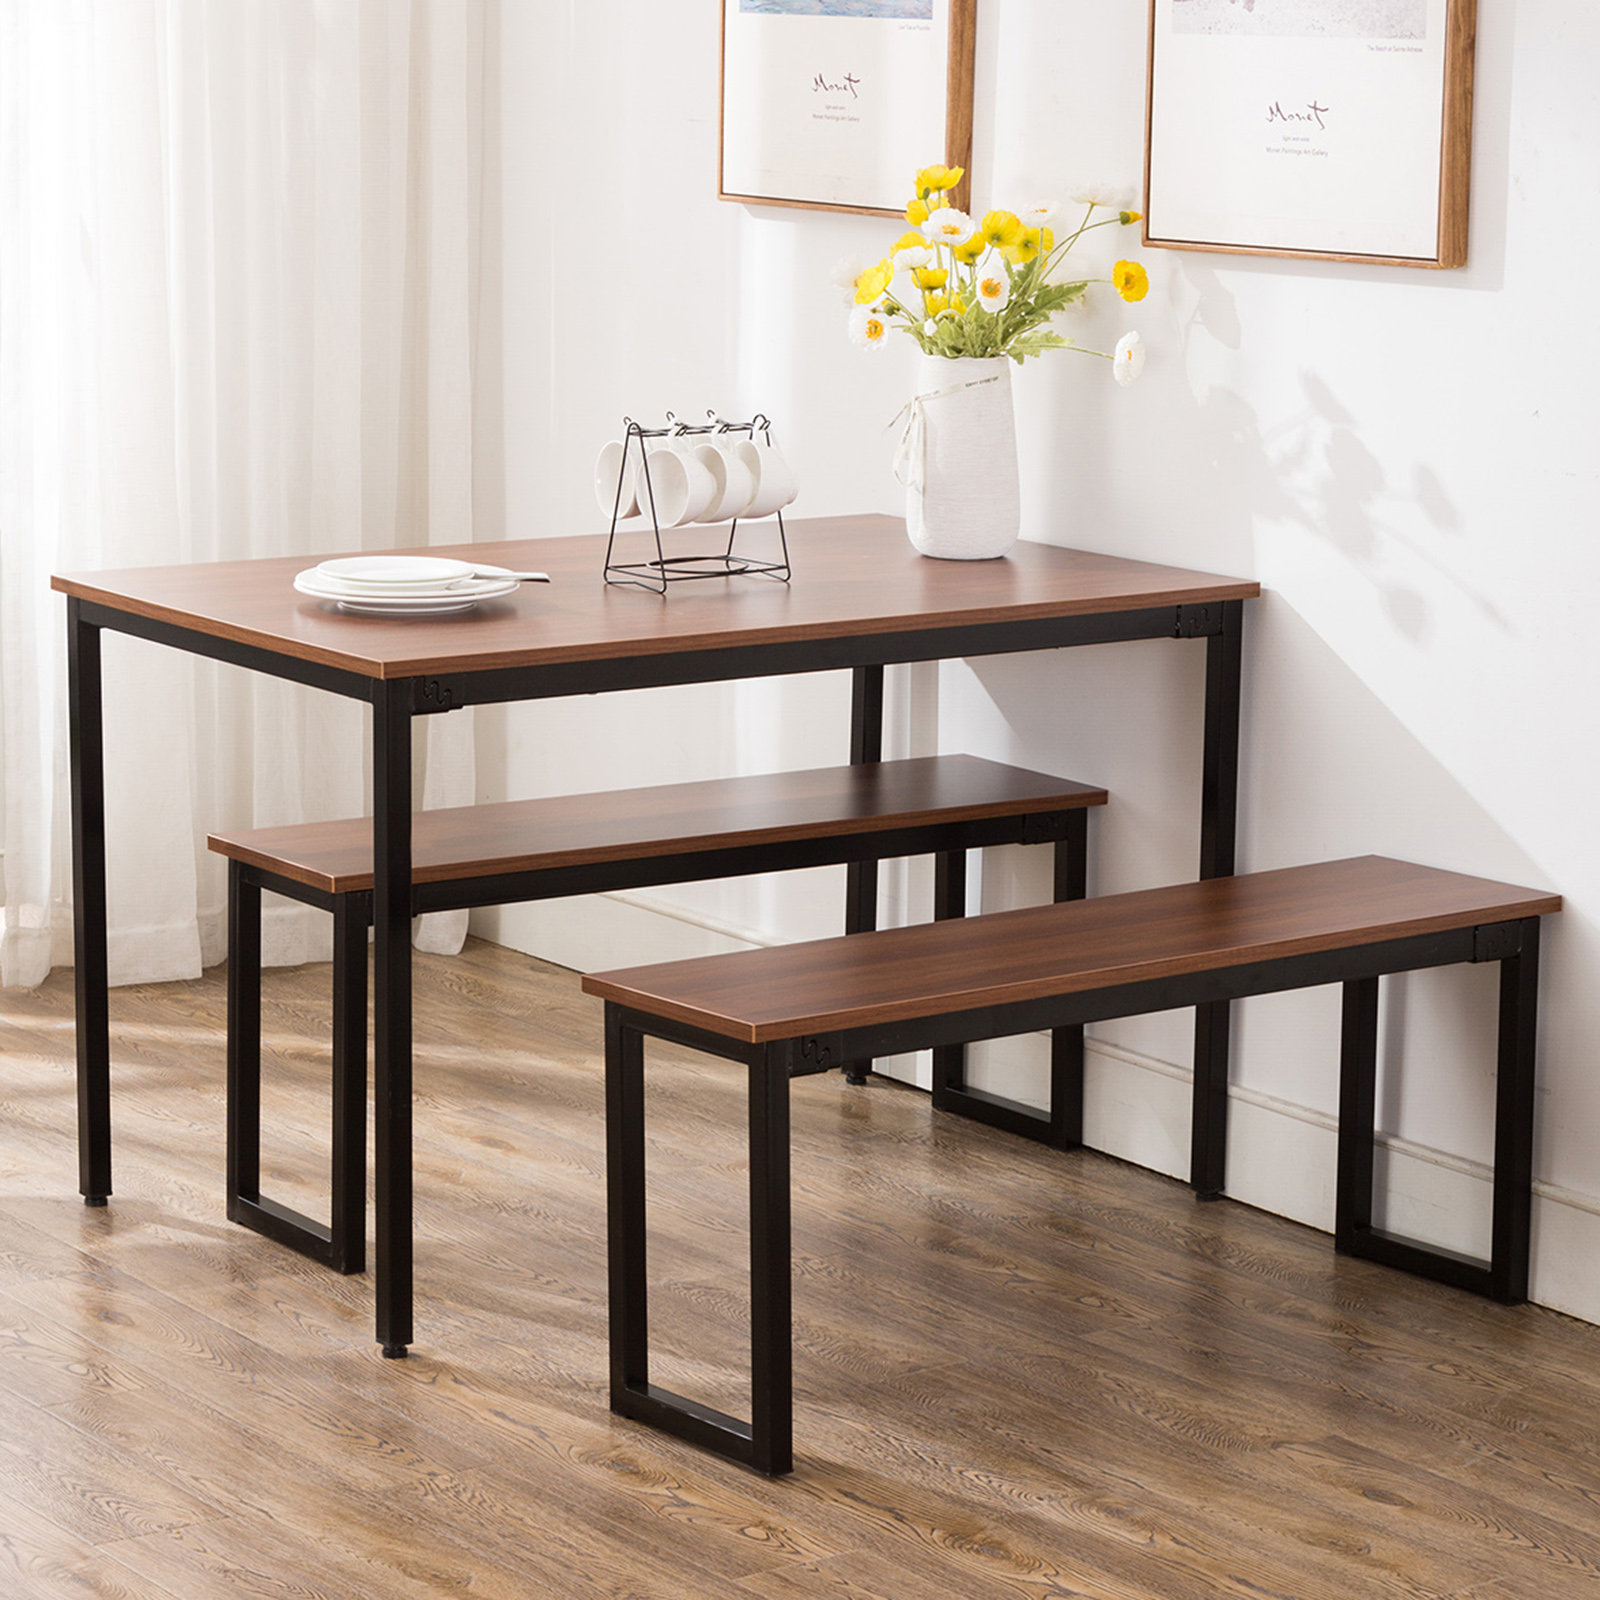 Details about Retro Dining Set Breakfast Nook Table And 2 Benches  Rectangular Kitchen Room